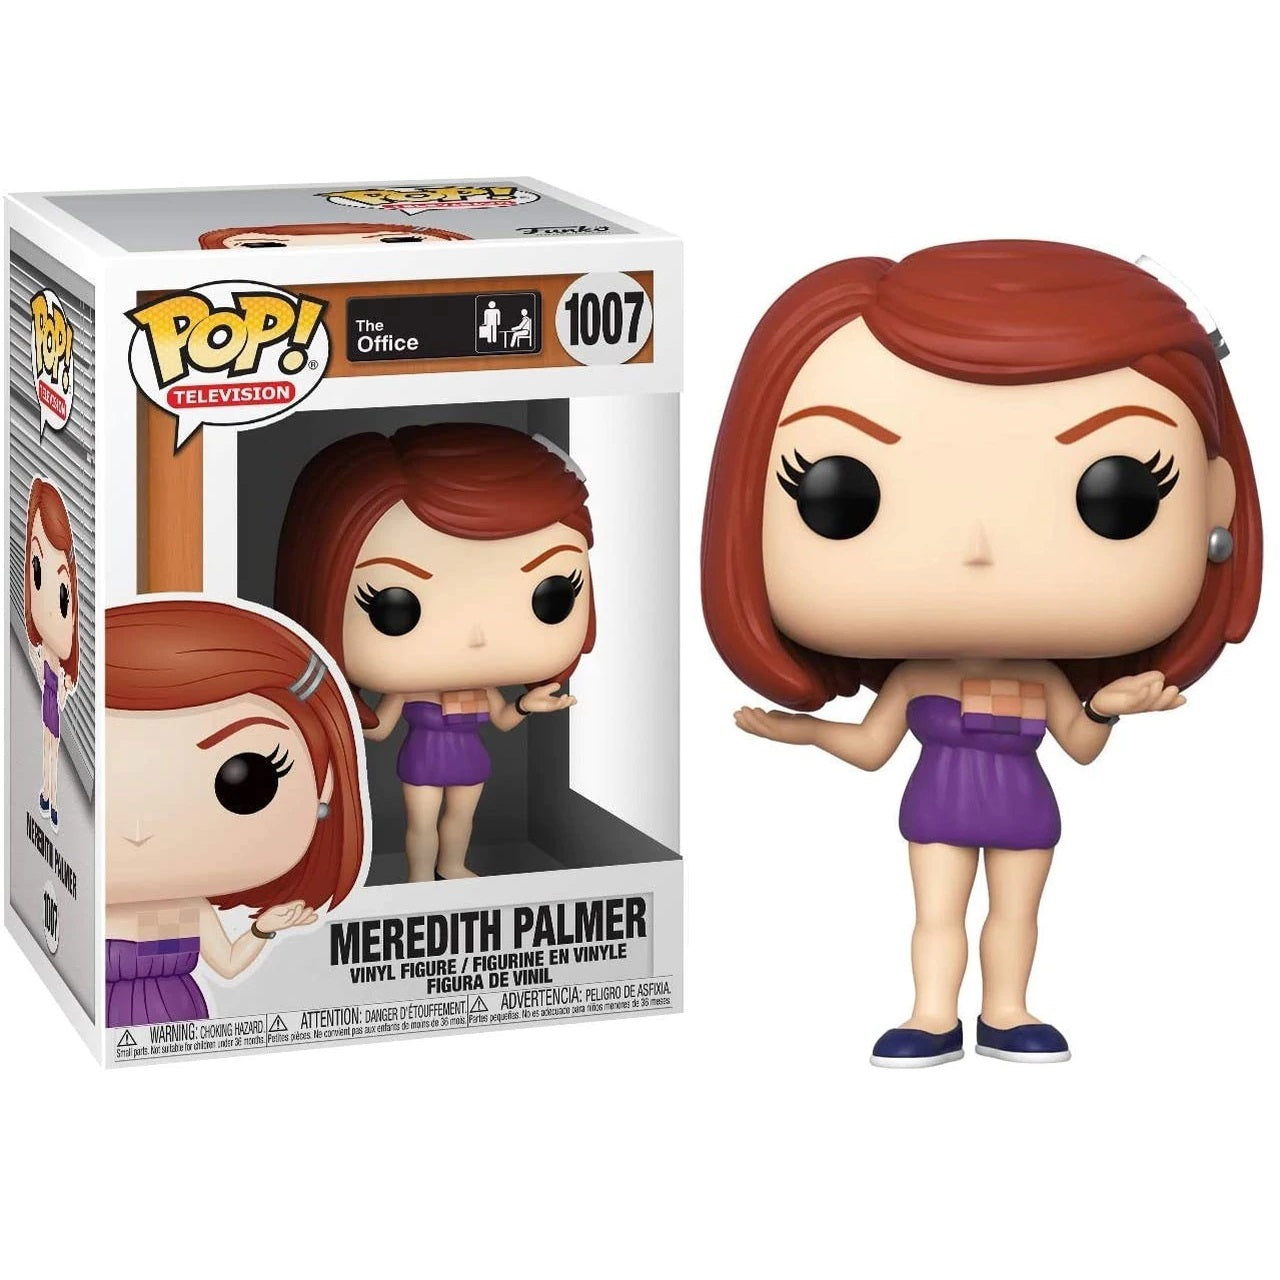 The Office Pop! Vinyl Figure Meredith Palmer [1007] - Fugitive Toys